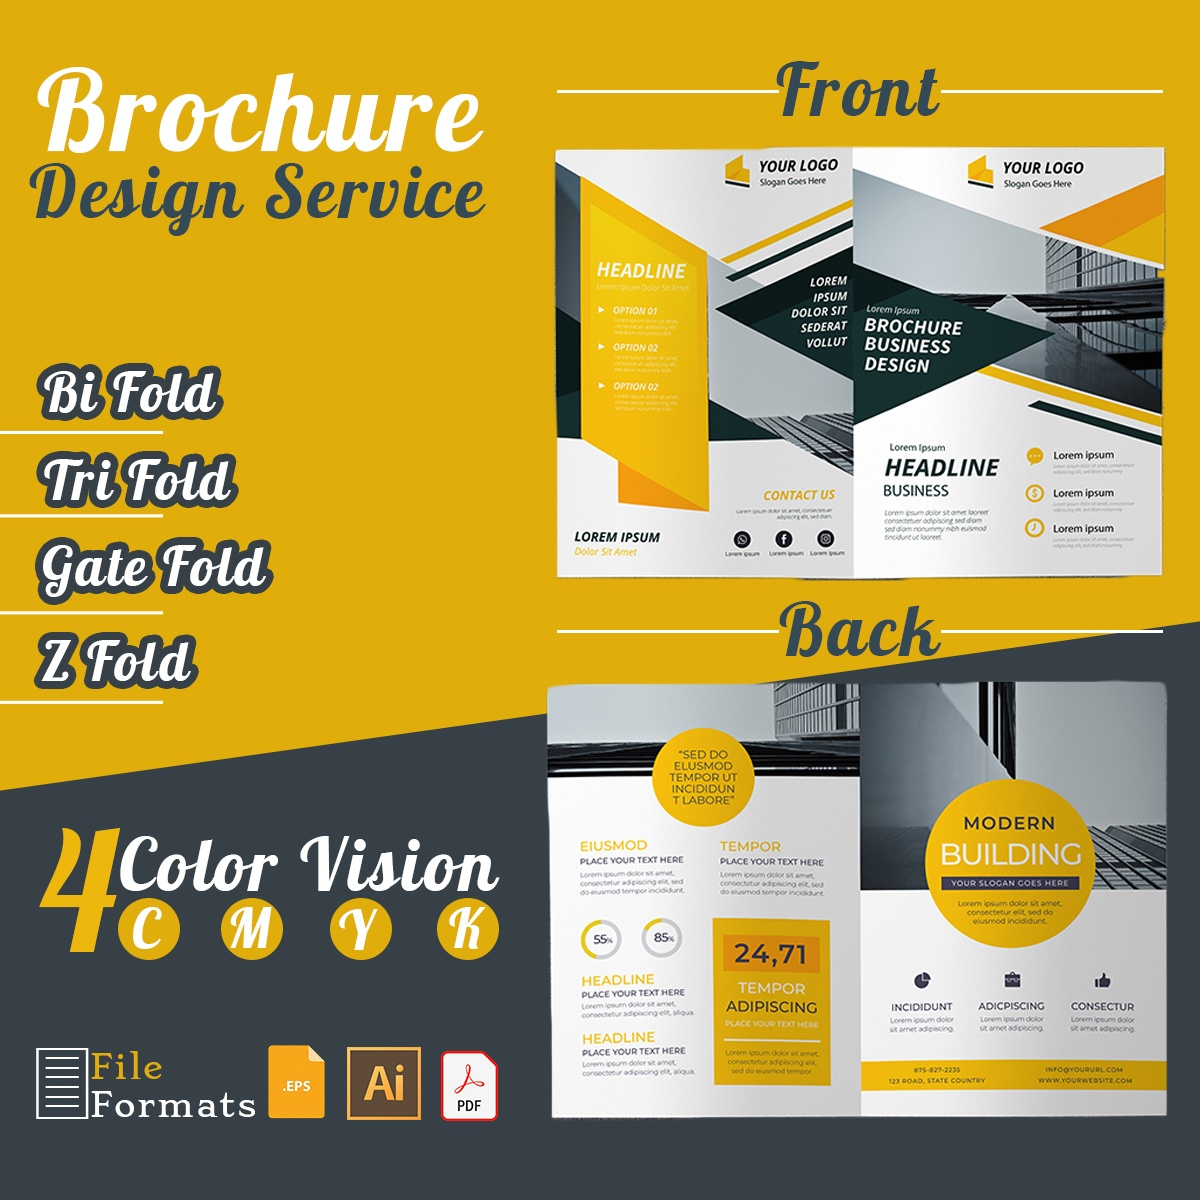 catalogue designing in Lahore, brochure designing in Pakistan, product catalogue design services, brochure design price in Pakistan, pamphlet making near me